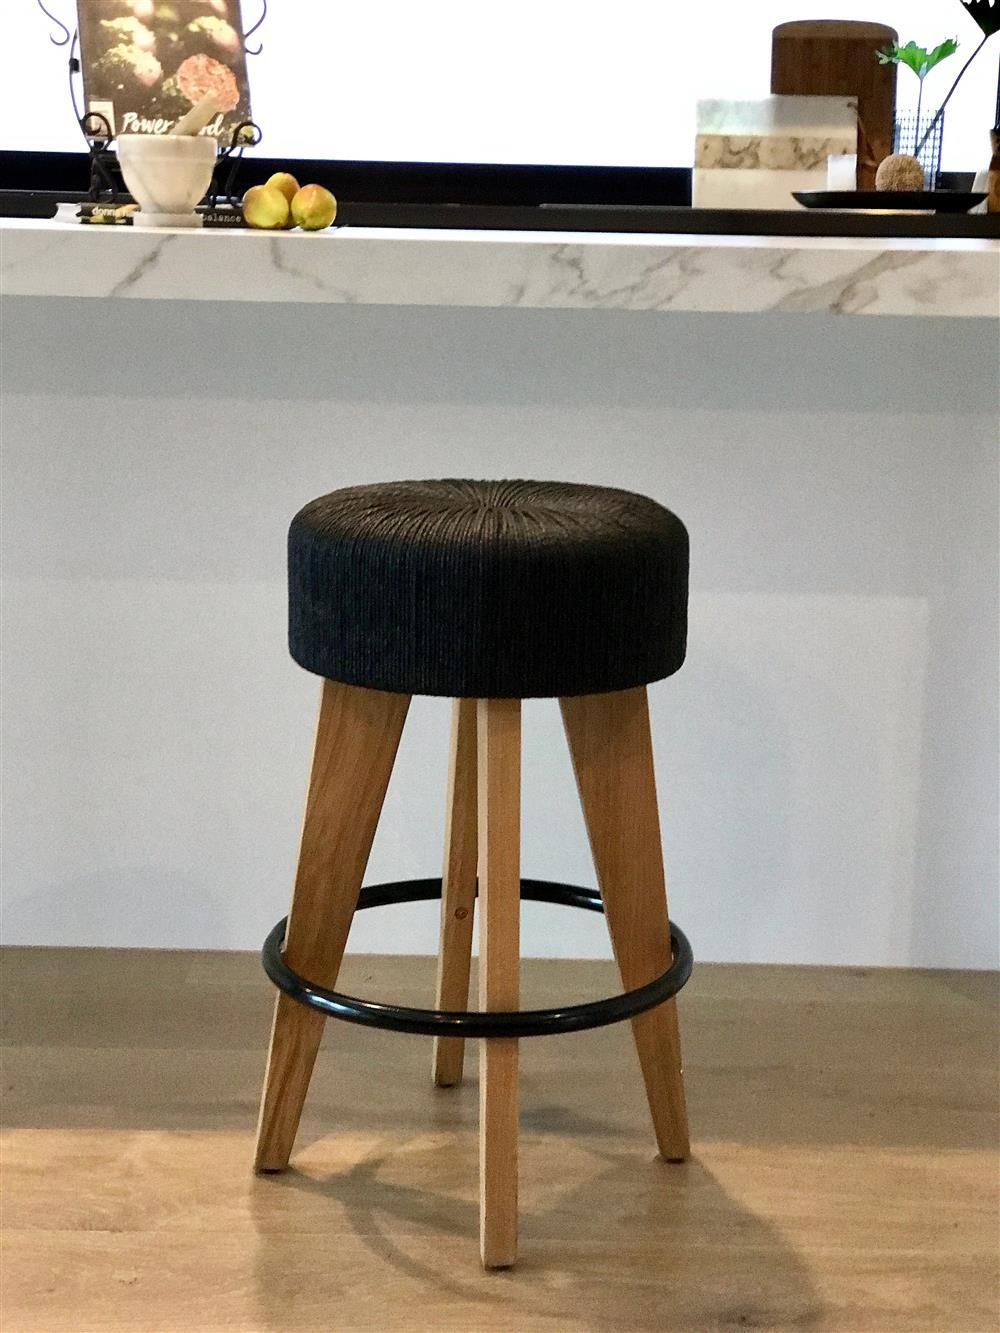 The Ultimate Kitchen Counter Stool Ideas To Impress Your Friends And Family Www Barstoolsfurniture Com Barstoo Stool Kitchen Stools Kitchen Counter Stools